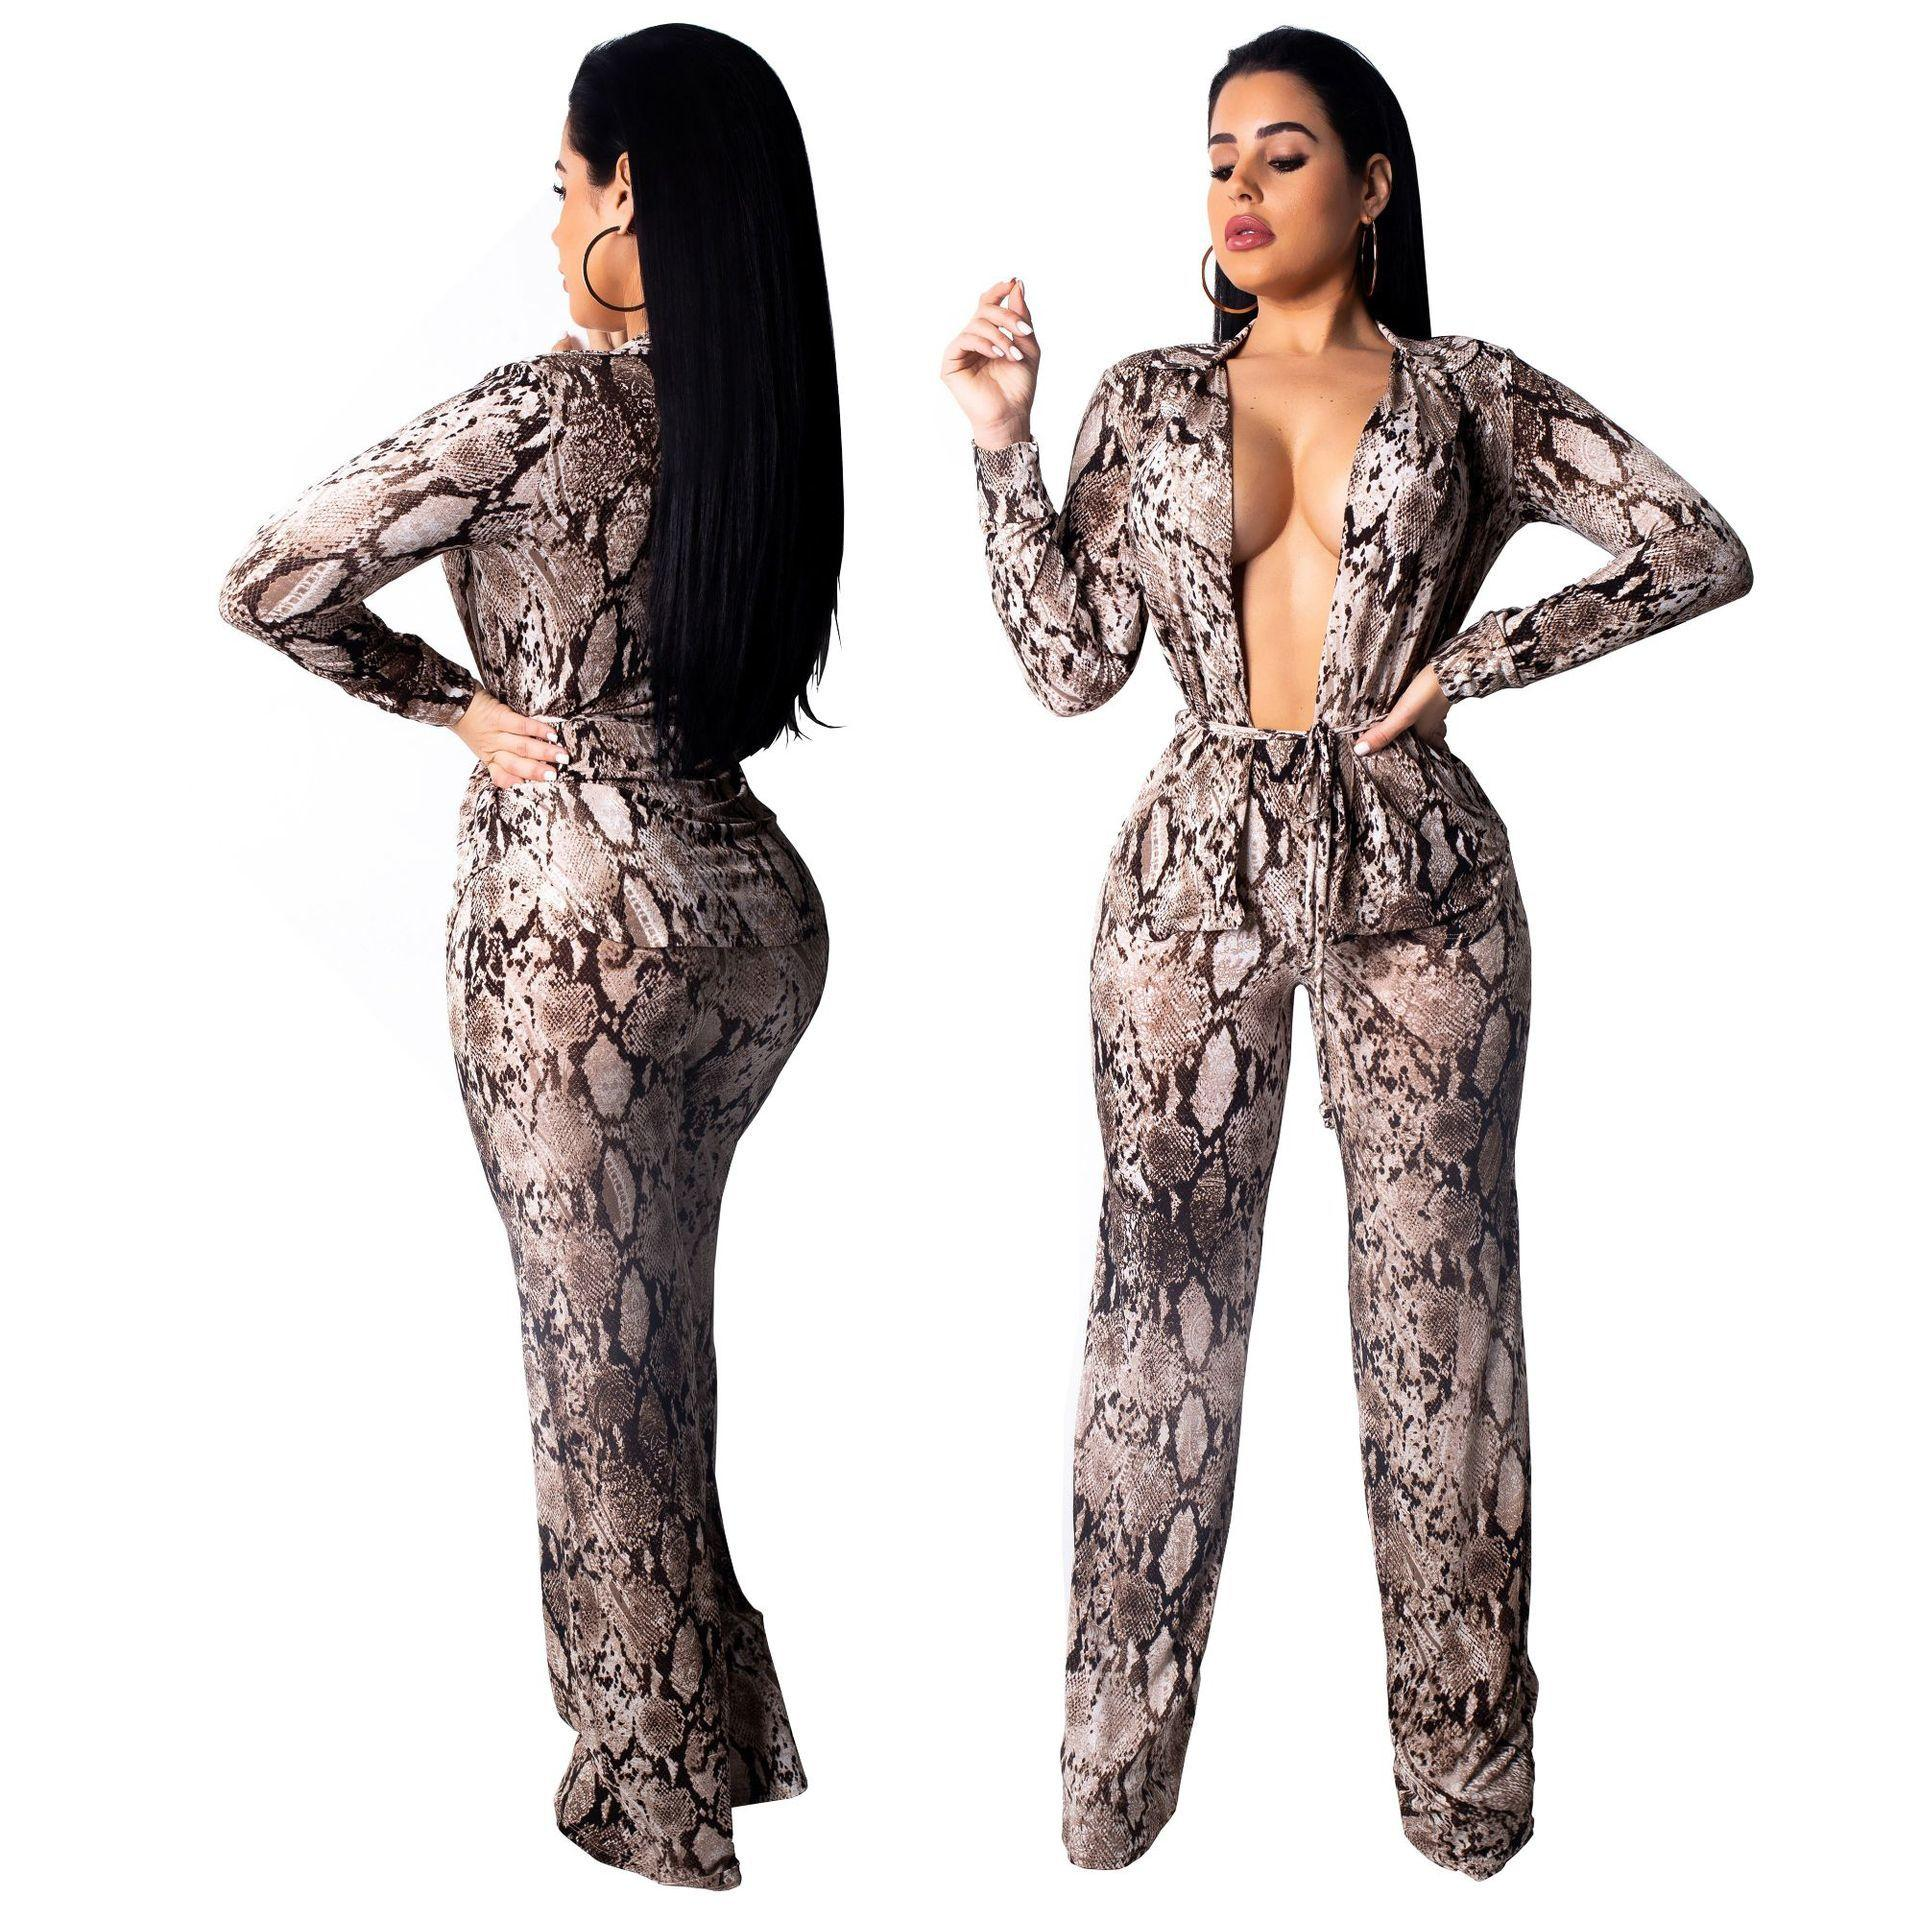 c0211f27540 2018 Heat Pin Sexy Fashion Digital Printing Long Sleeves Serpentine Suit  Two Piece Set